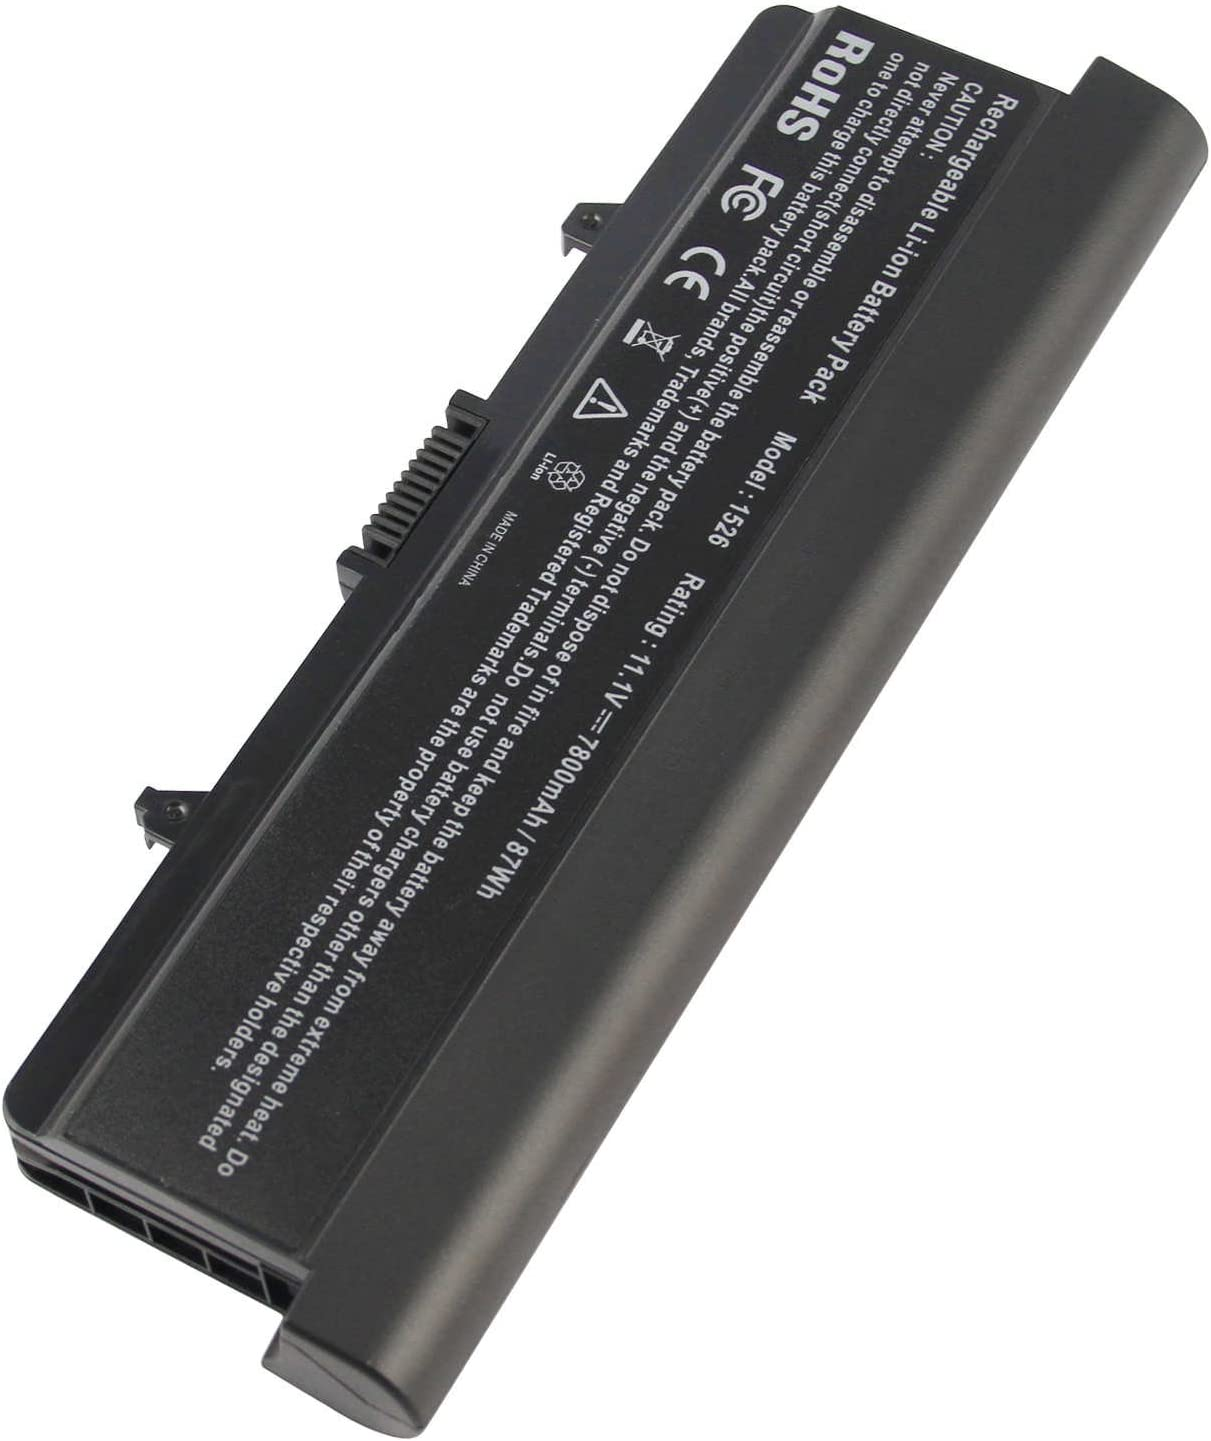 Fancy Buying 87Wh 9 Cell Laptop Battery service 1525 5% OFF 1 Dell Inspiron for